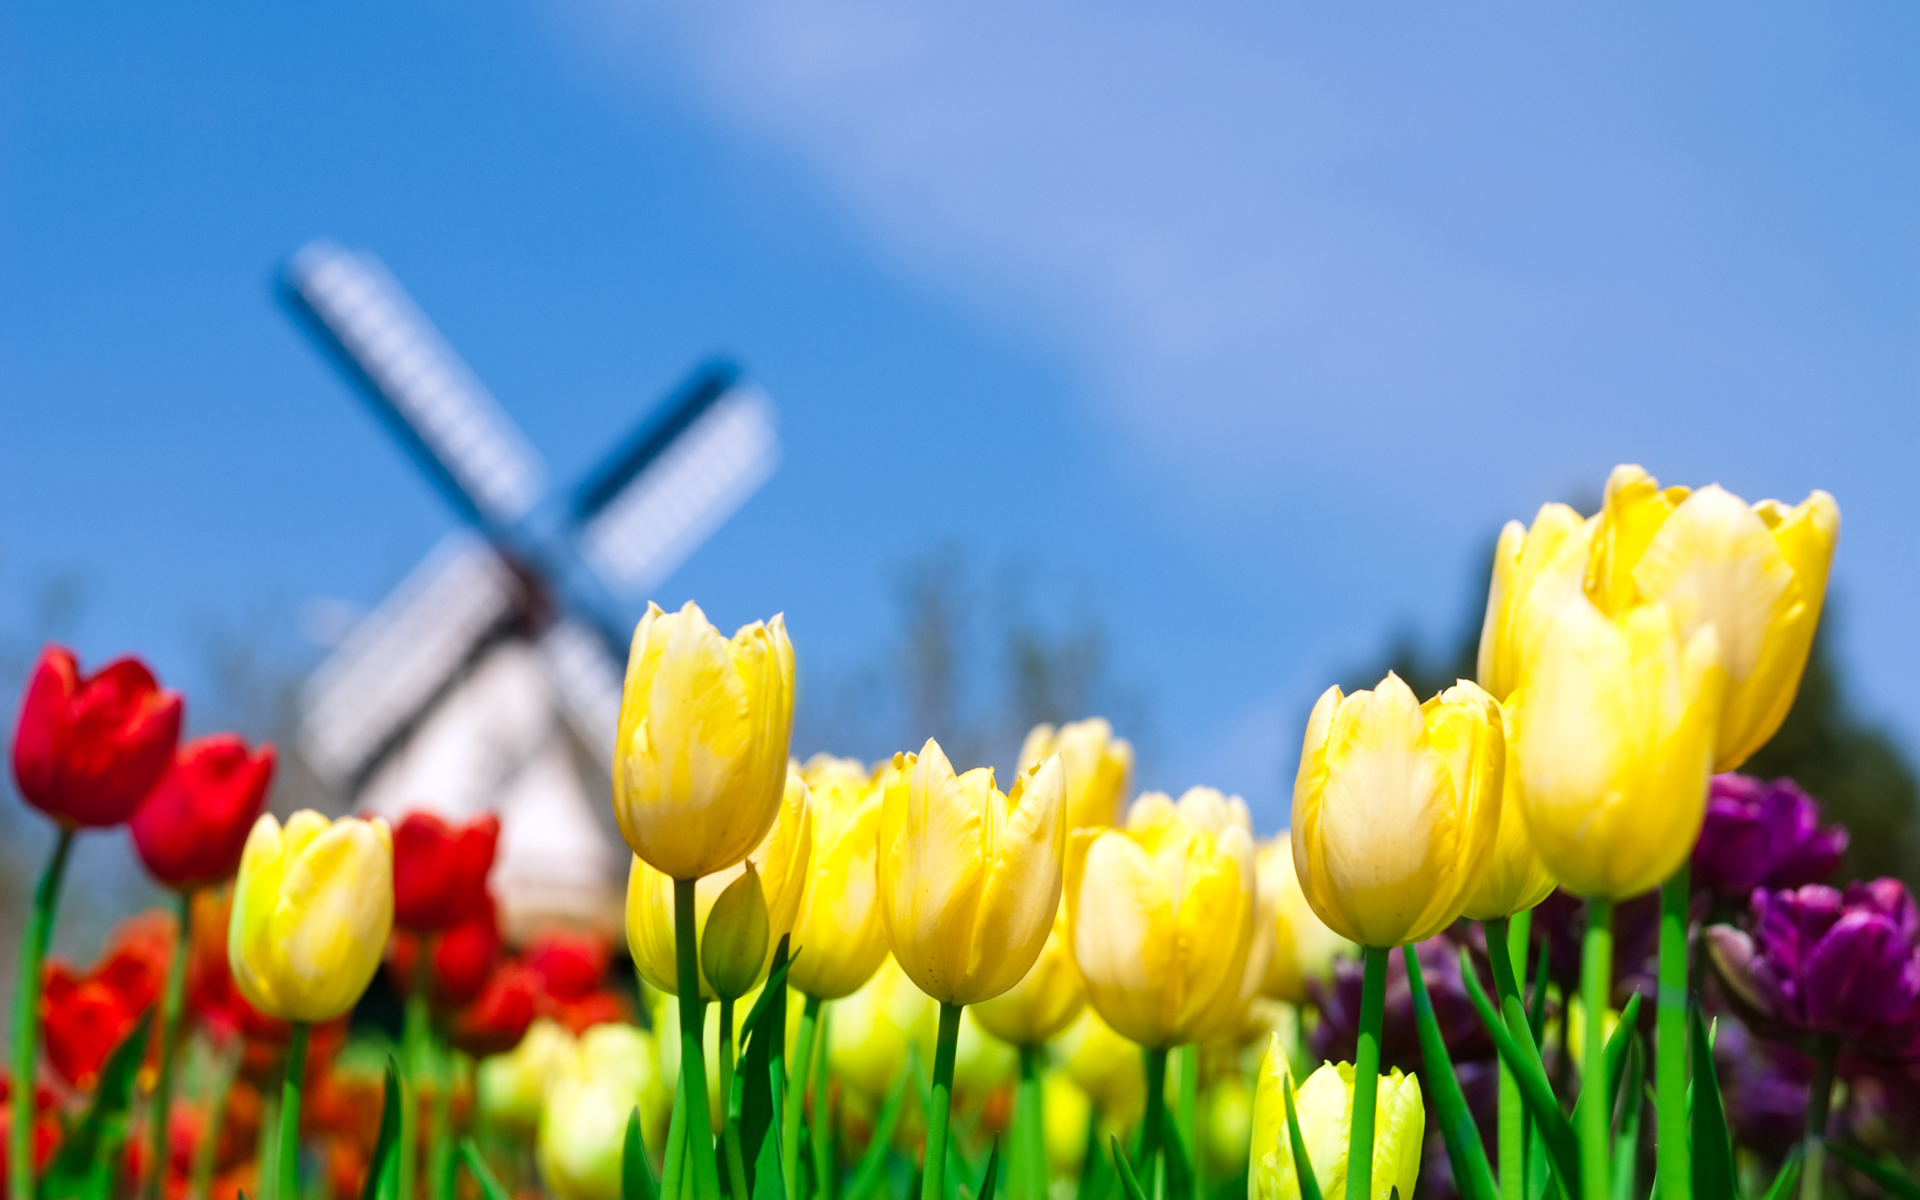 Daily Wallpaper Tulips In Netherlands